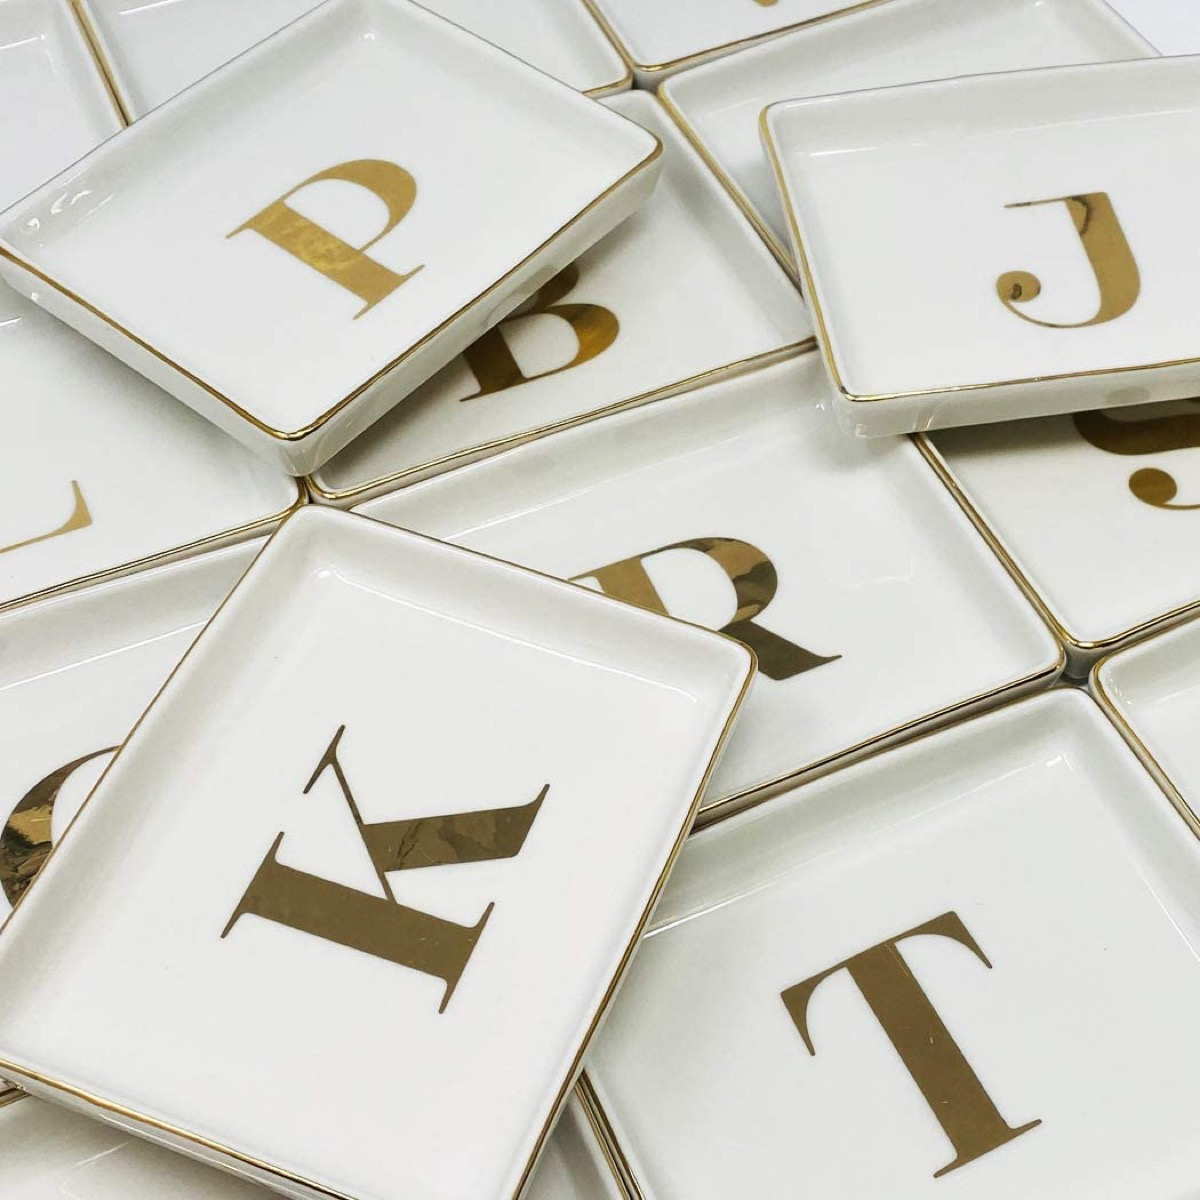 Pile of jewelry trays with initials